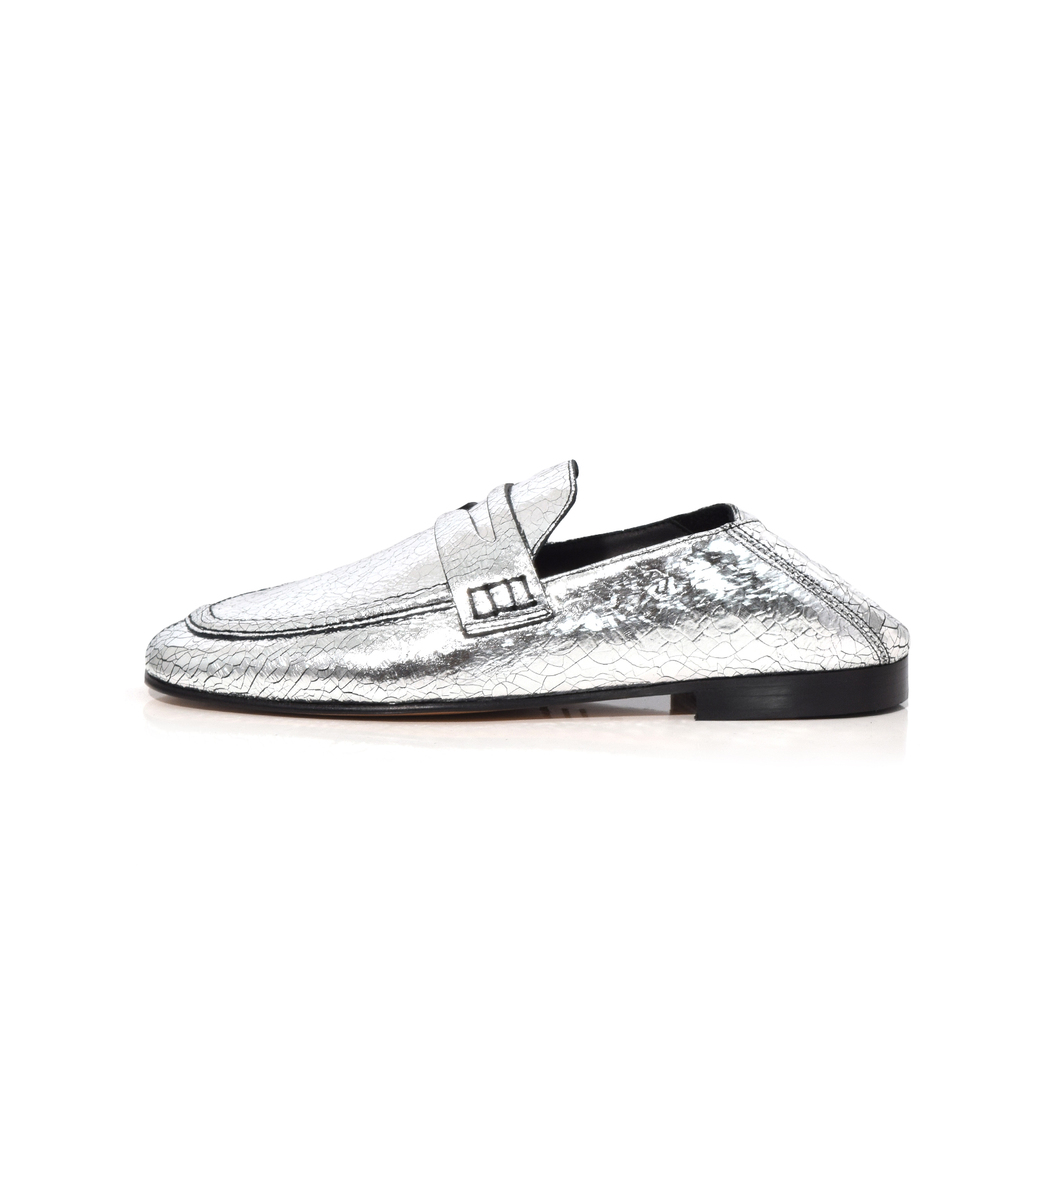 6b8373be2ea Isabel Marant Fezzy Metallic Cracked-Leather Collapsible-Heel Loafers In  Silver